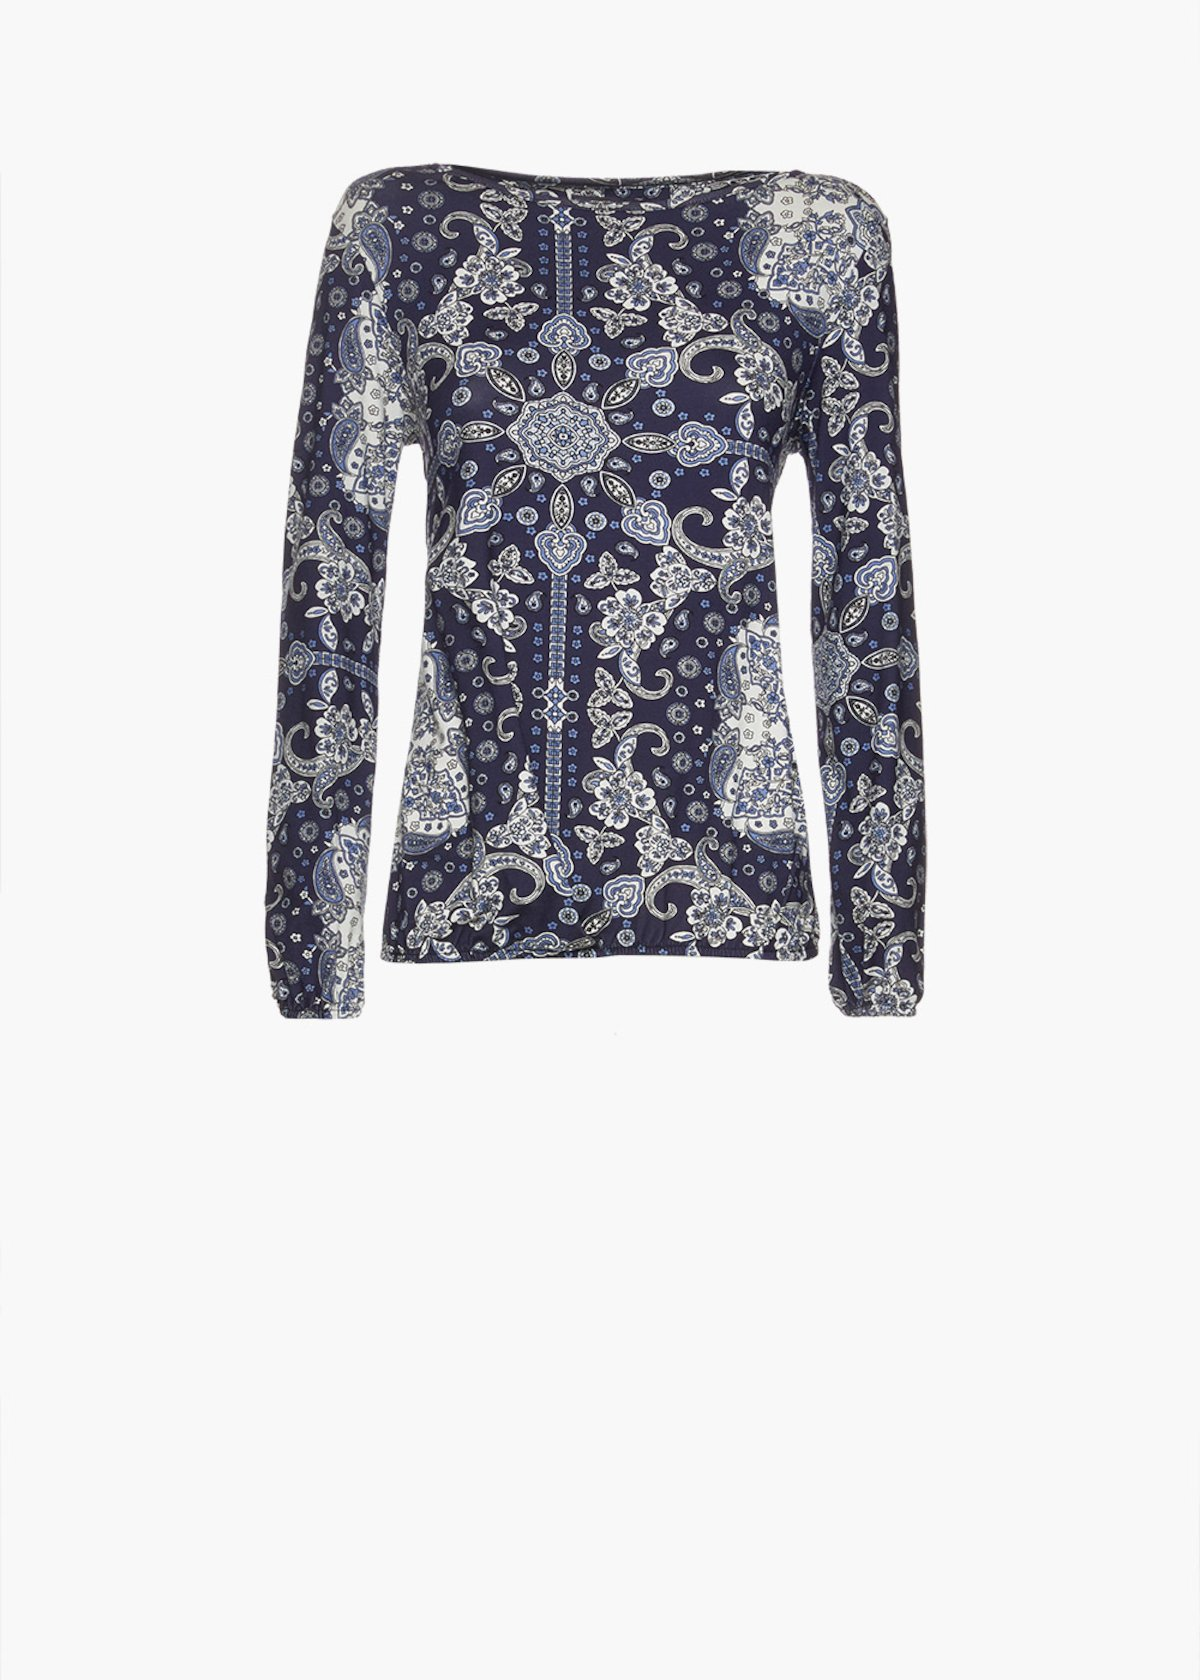 T-shirt Smoky in jersey paisley print - Blue / White Fantasia - Woman